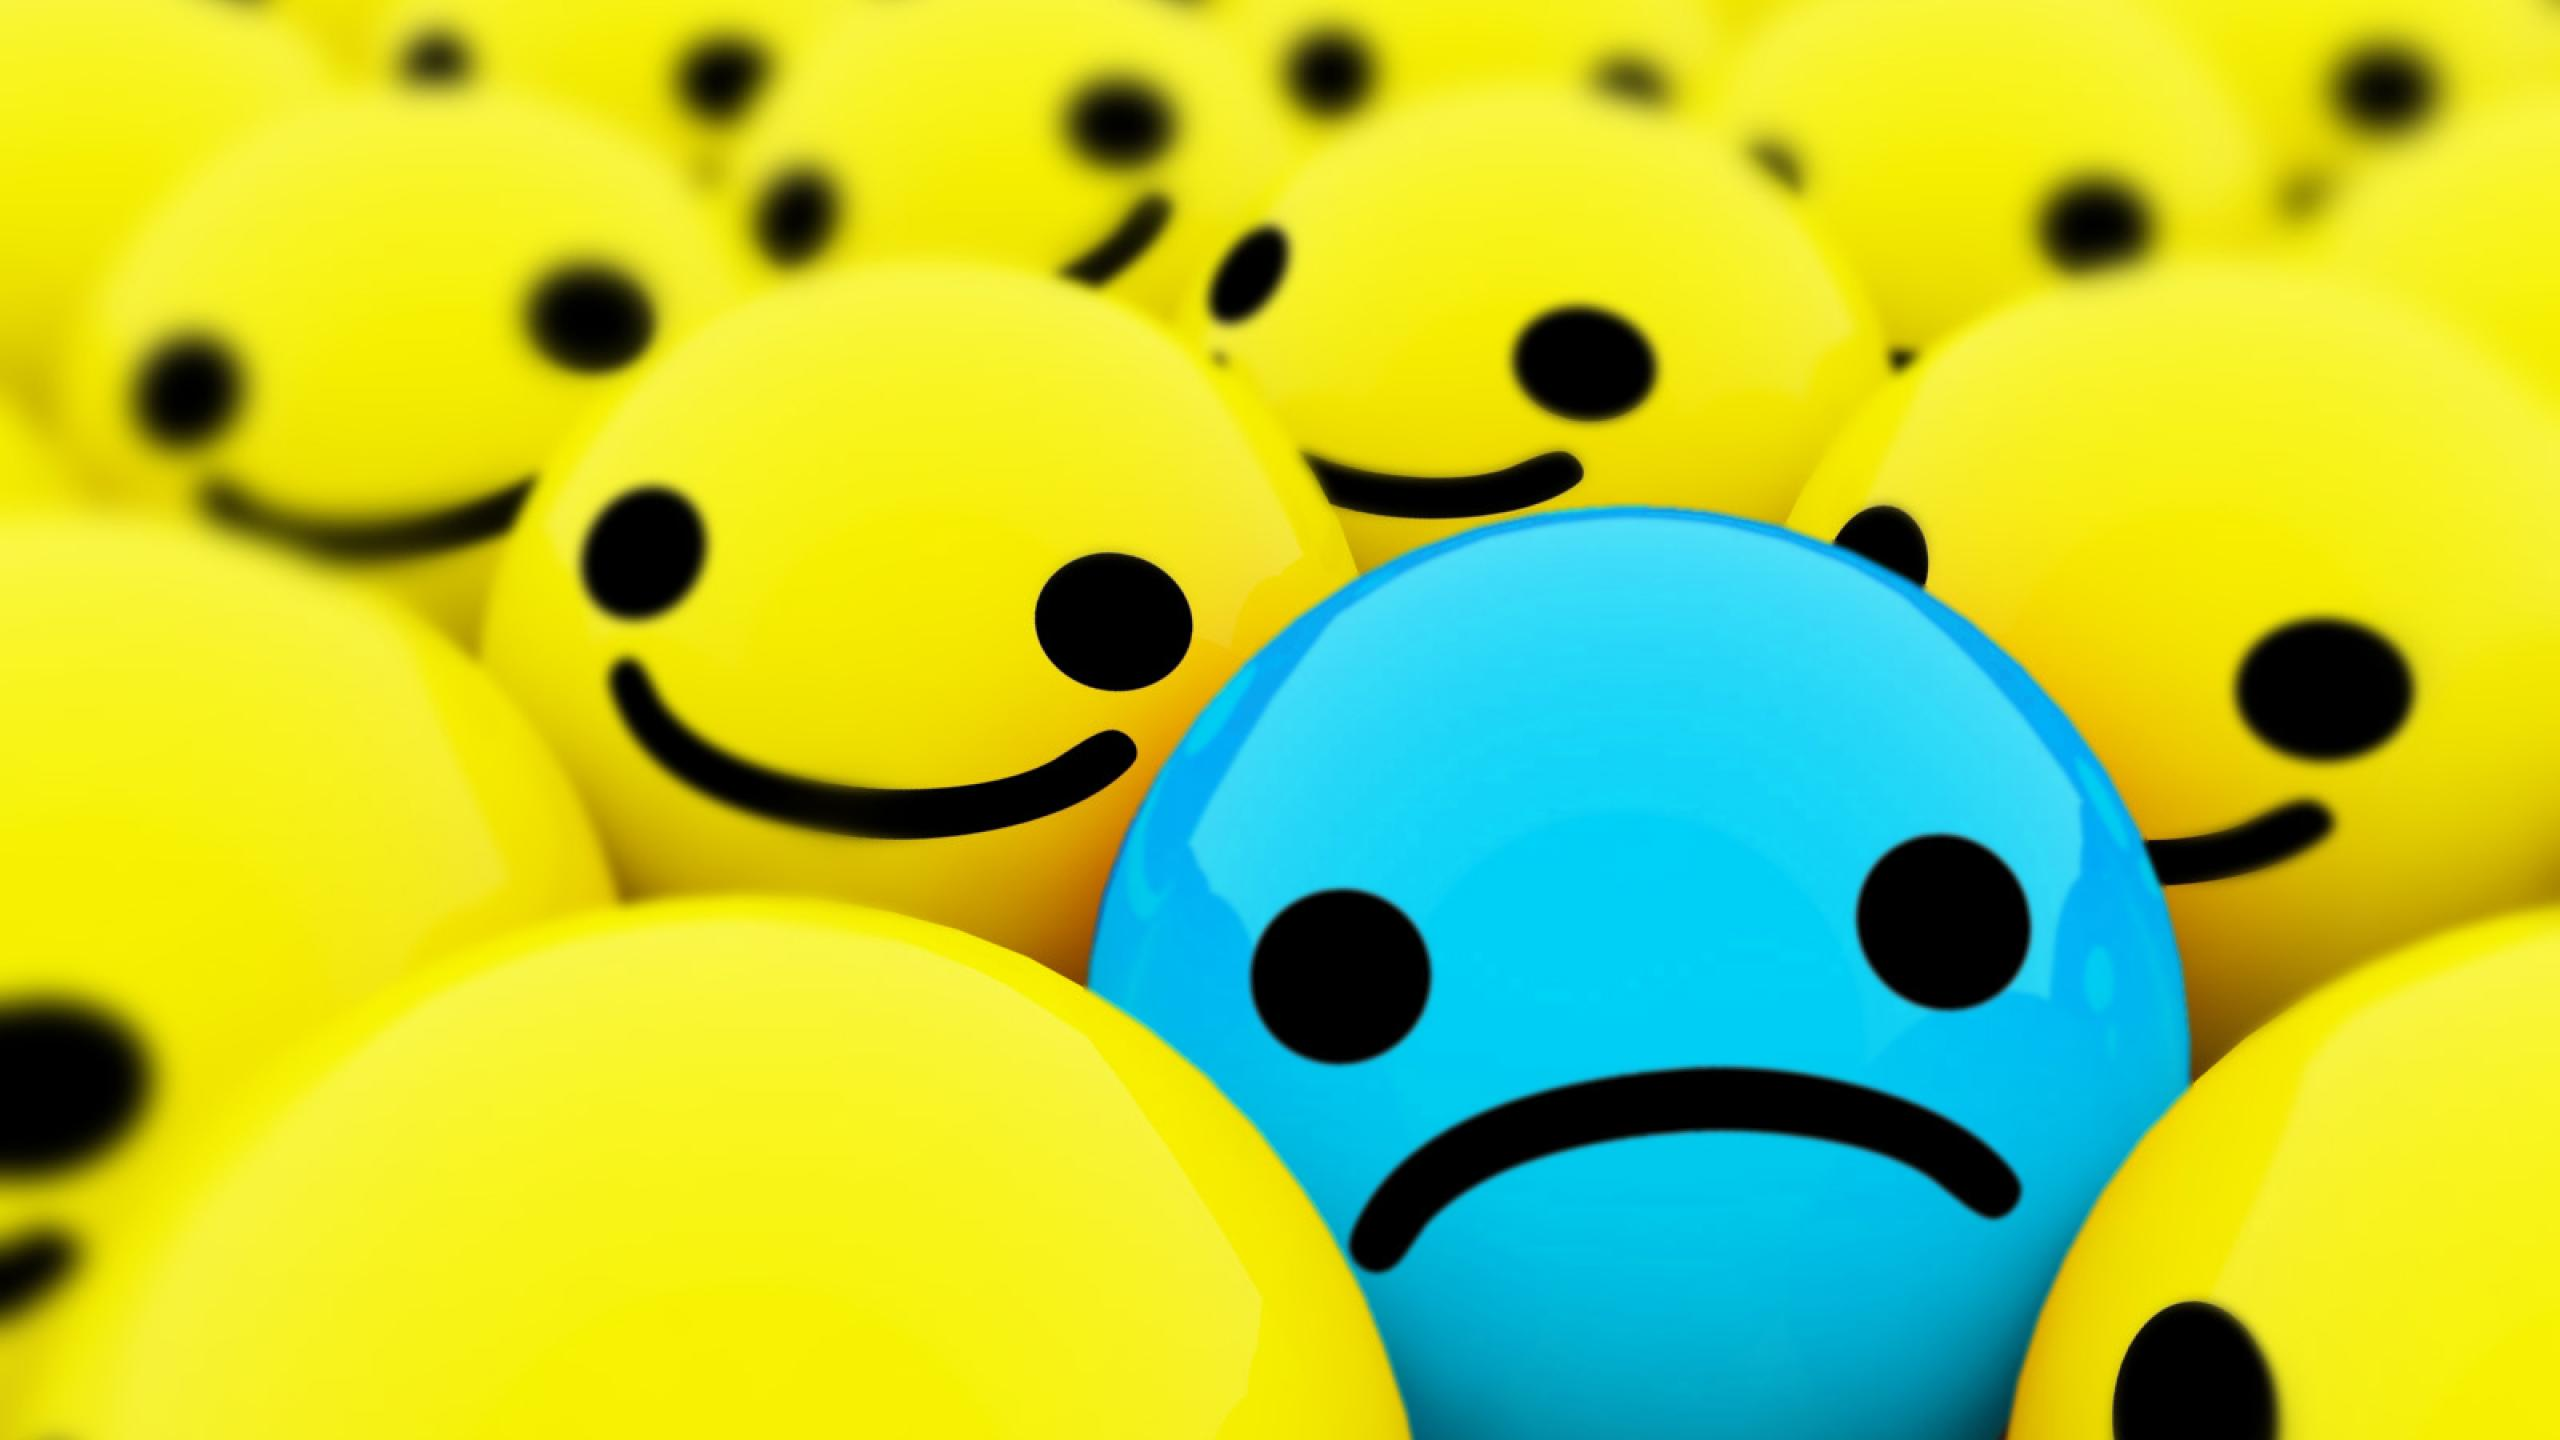 Sad face wallpaper